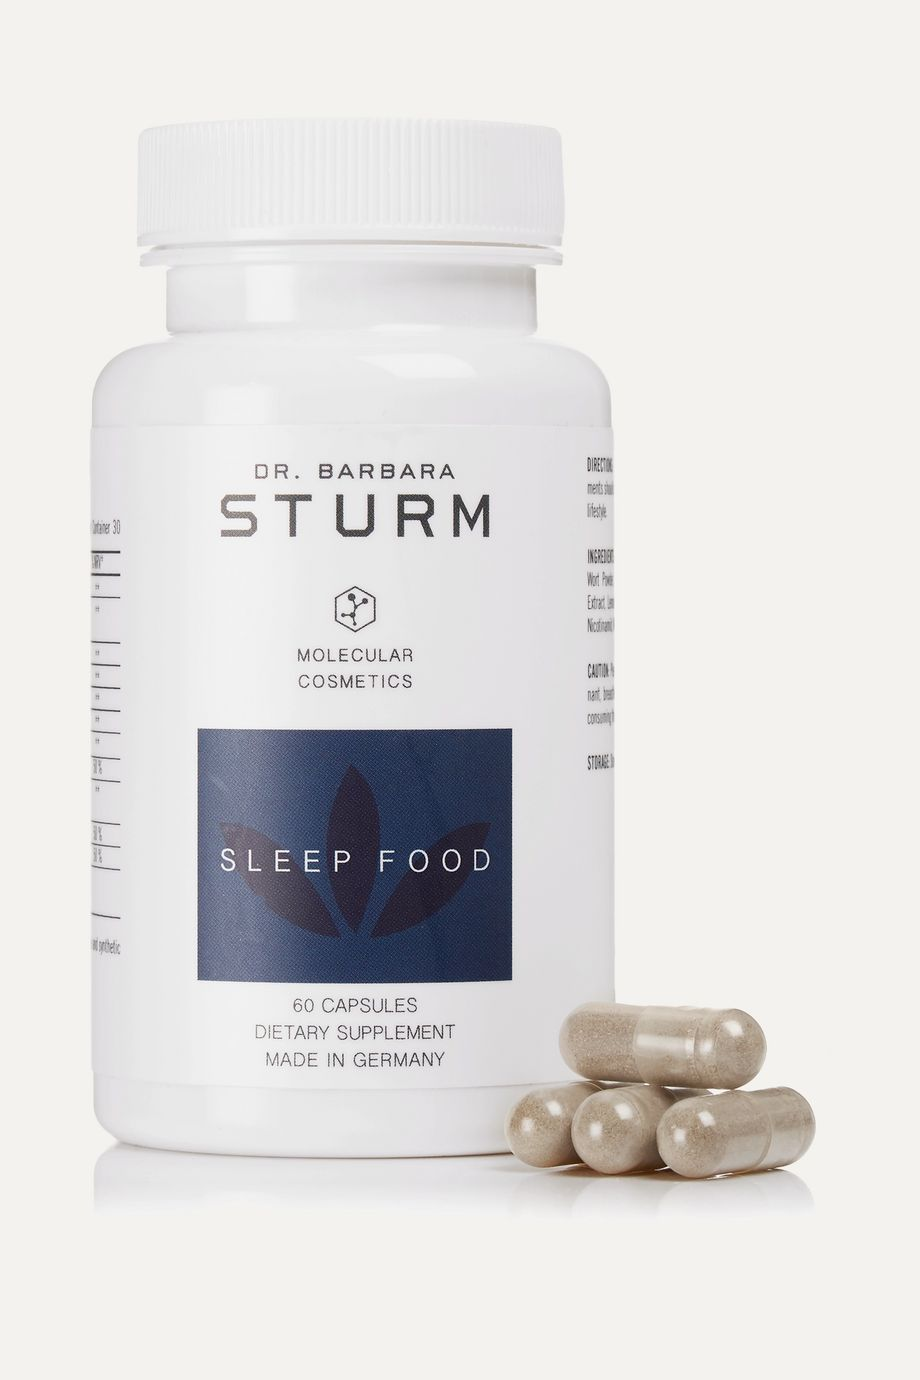 Dr. Barbara Sturm Sleep Food (60 capsules)